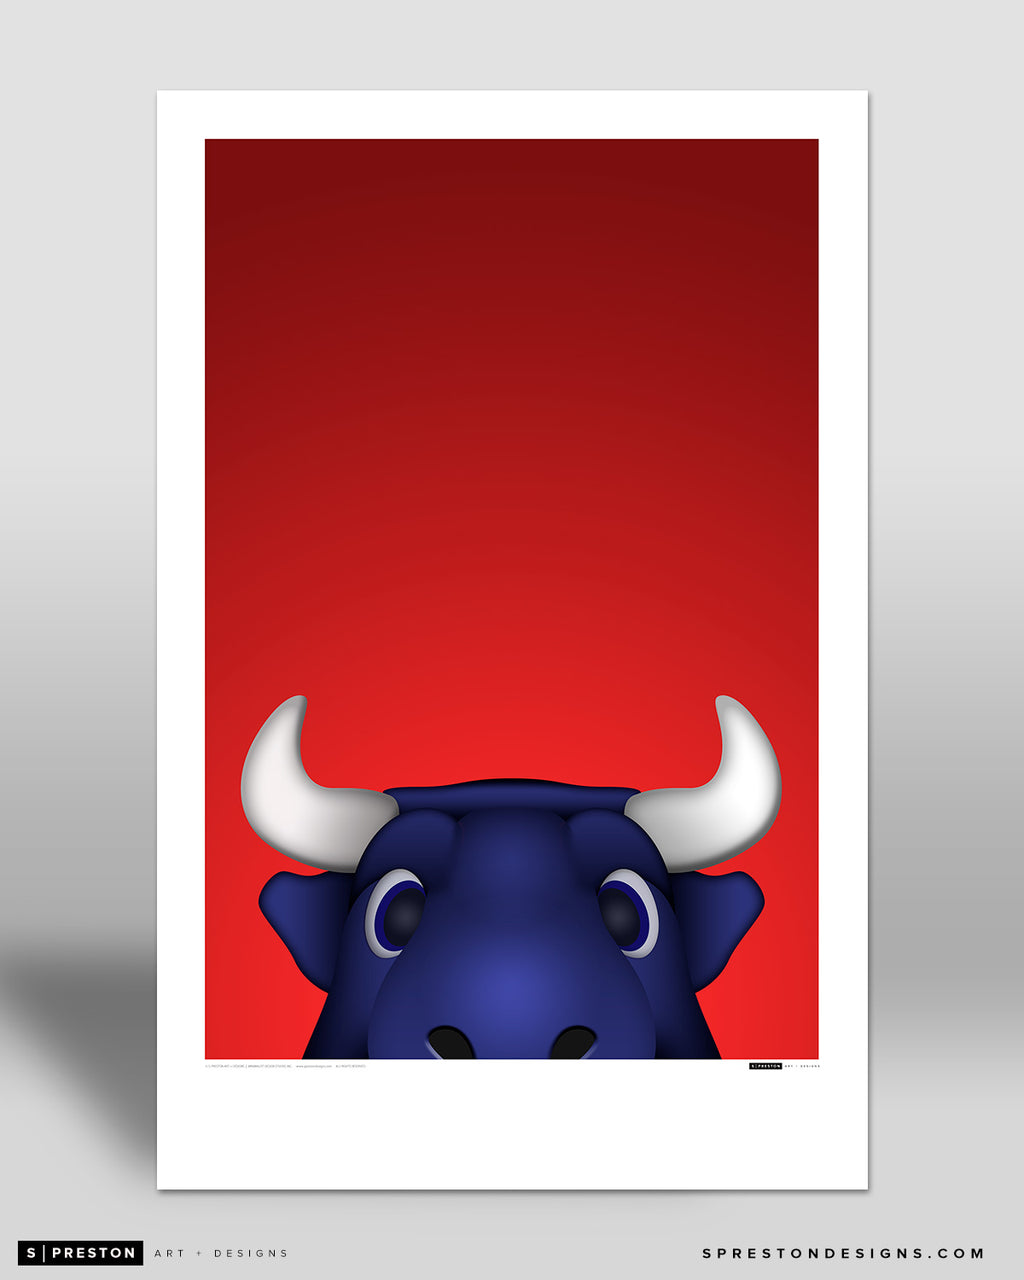 Minimalist Toro Poster Print Houston Texans - S Preston